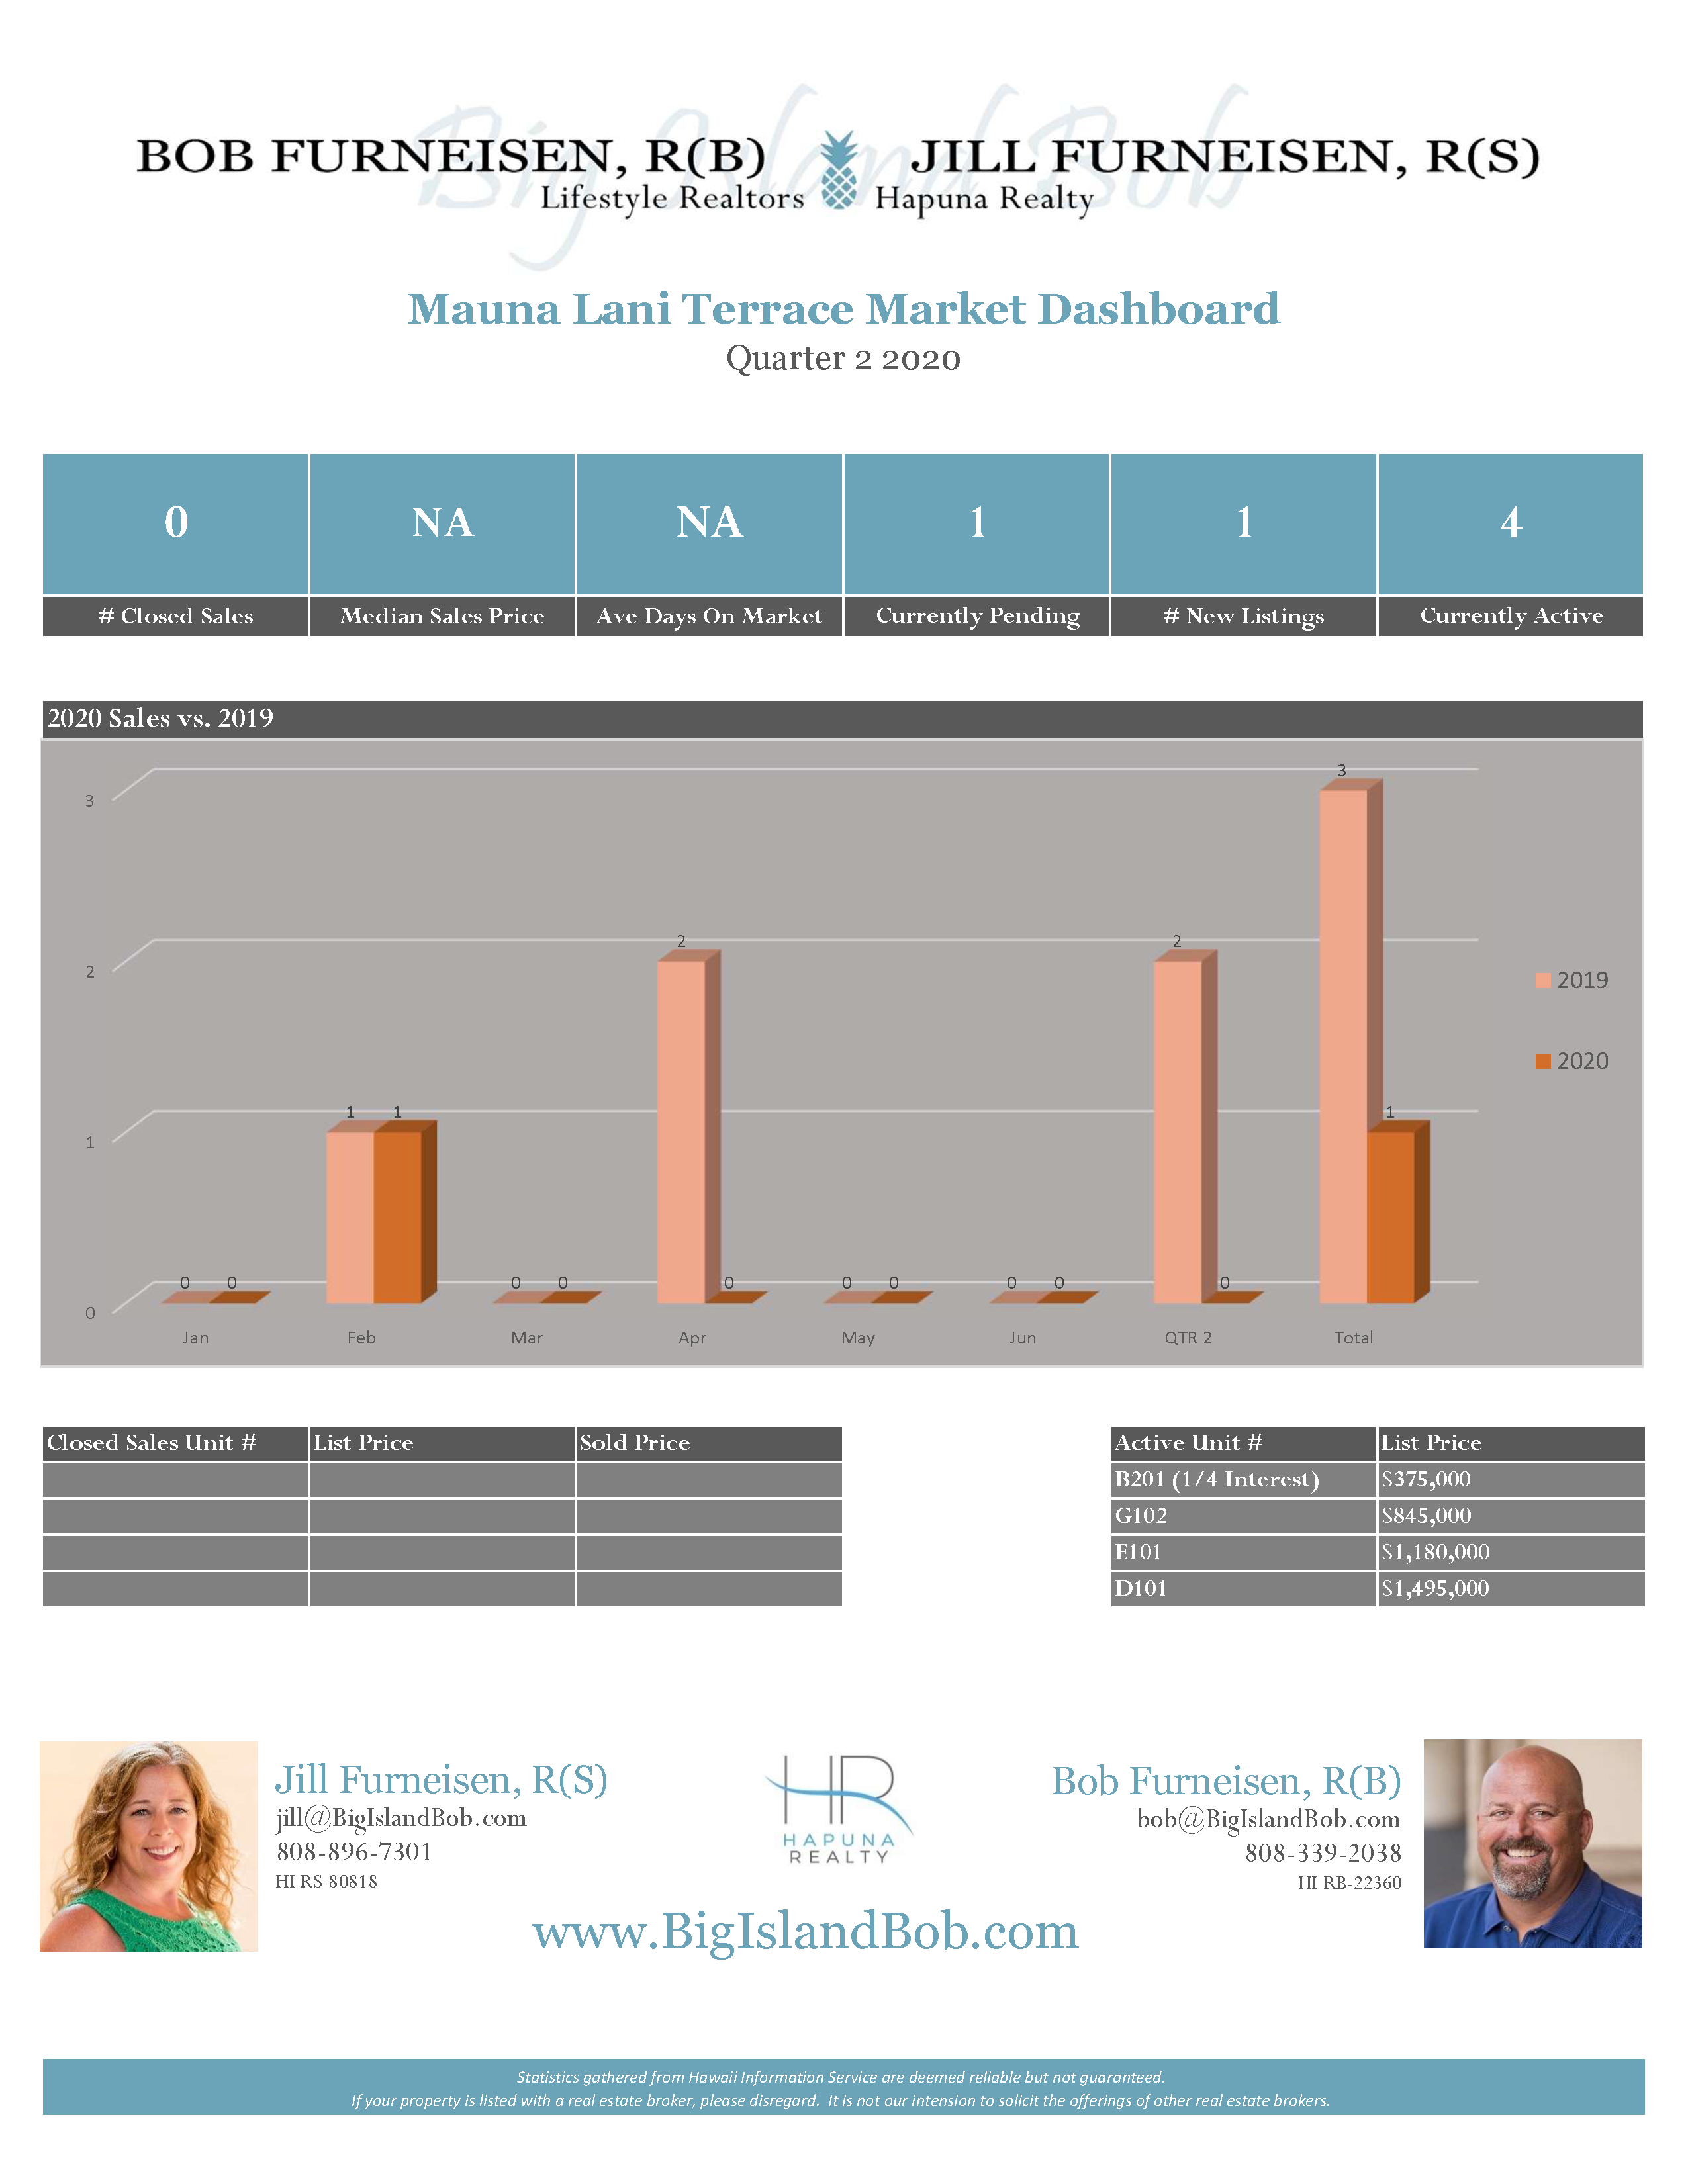 Mauna Lani Terrace Quarter 2 2020 Real Estate Market Dashboard